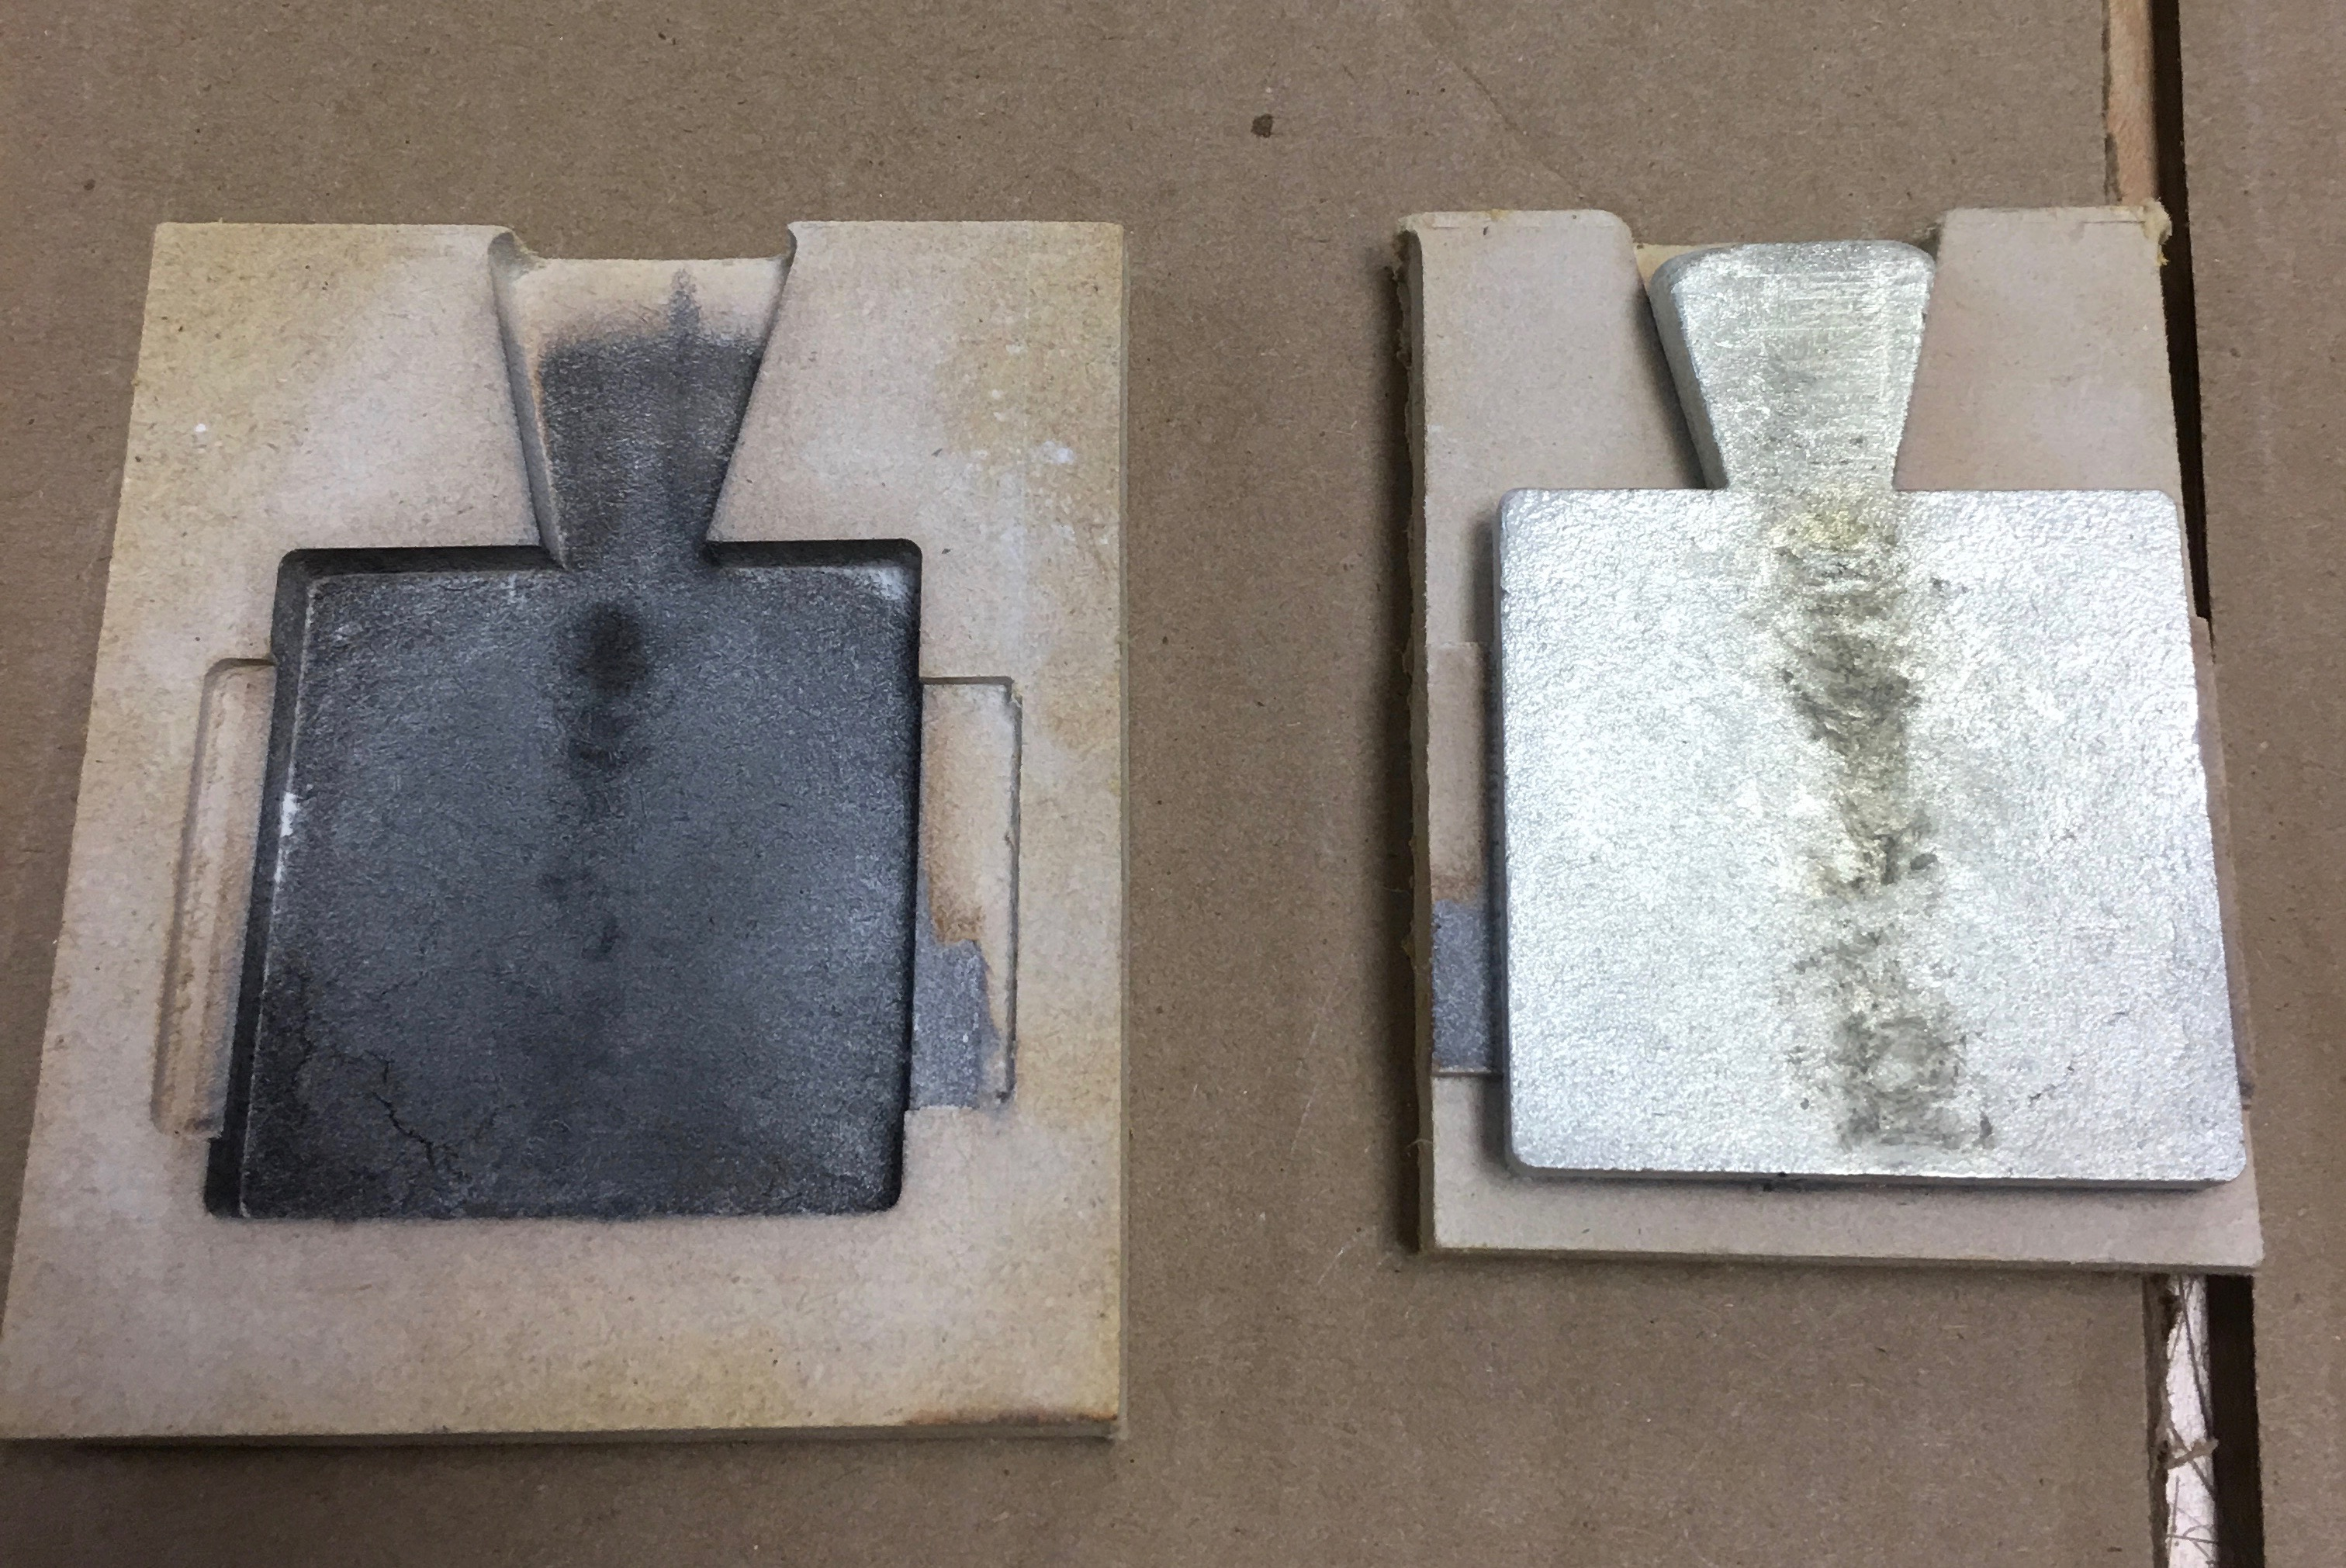 Separate the mold for the CNC milling pewter casting project